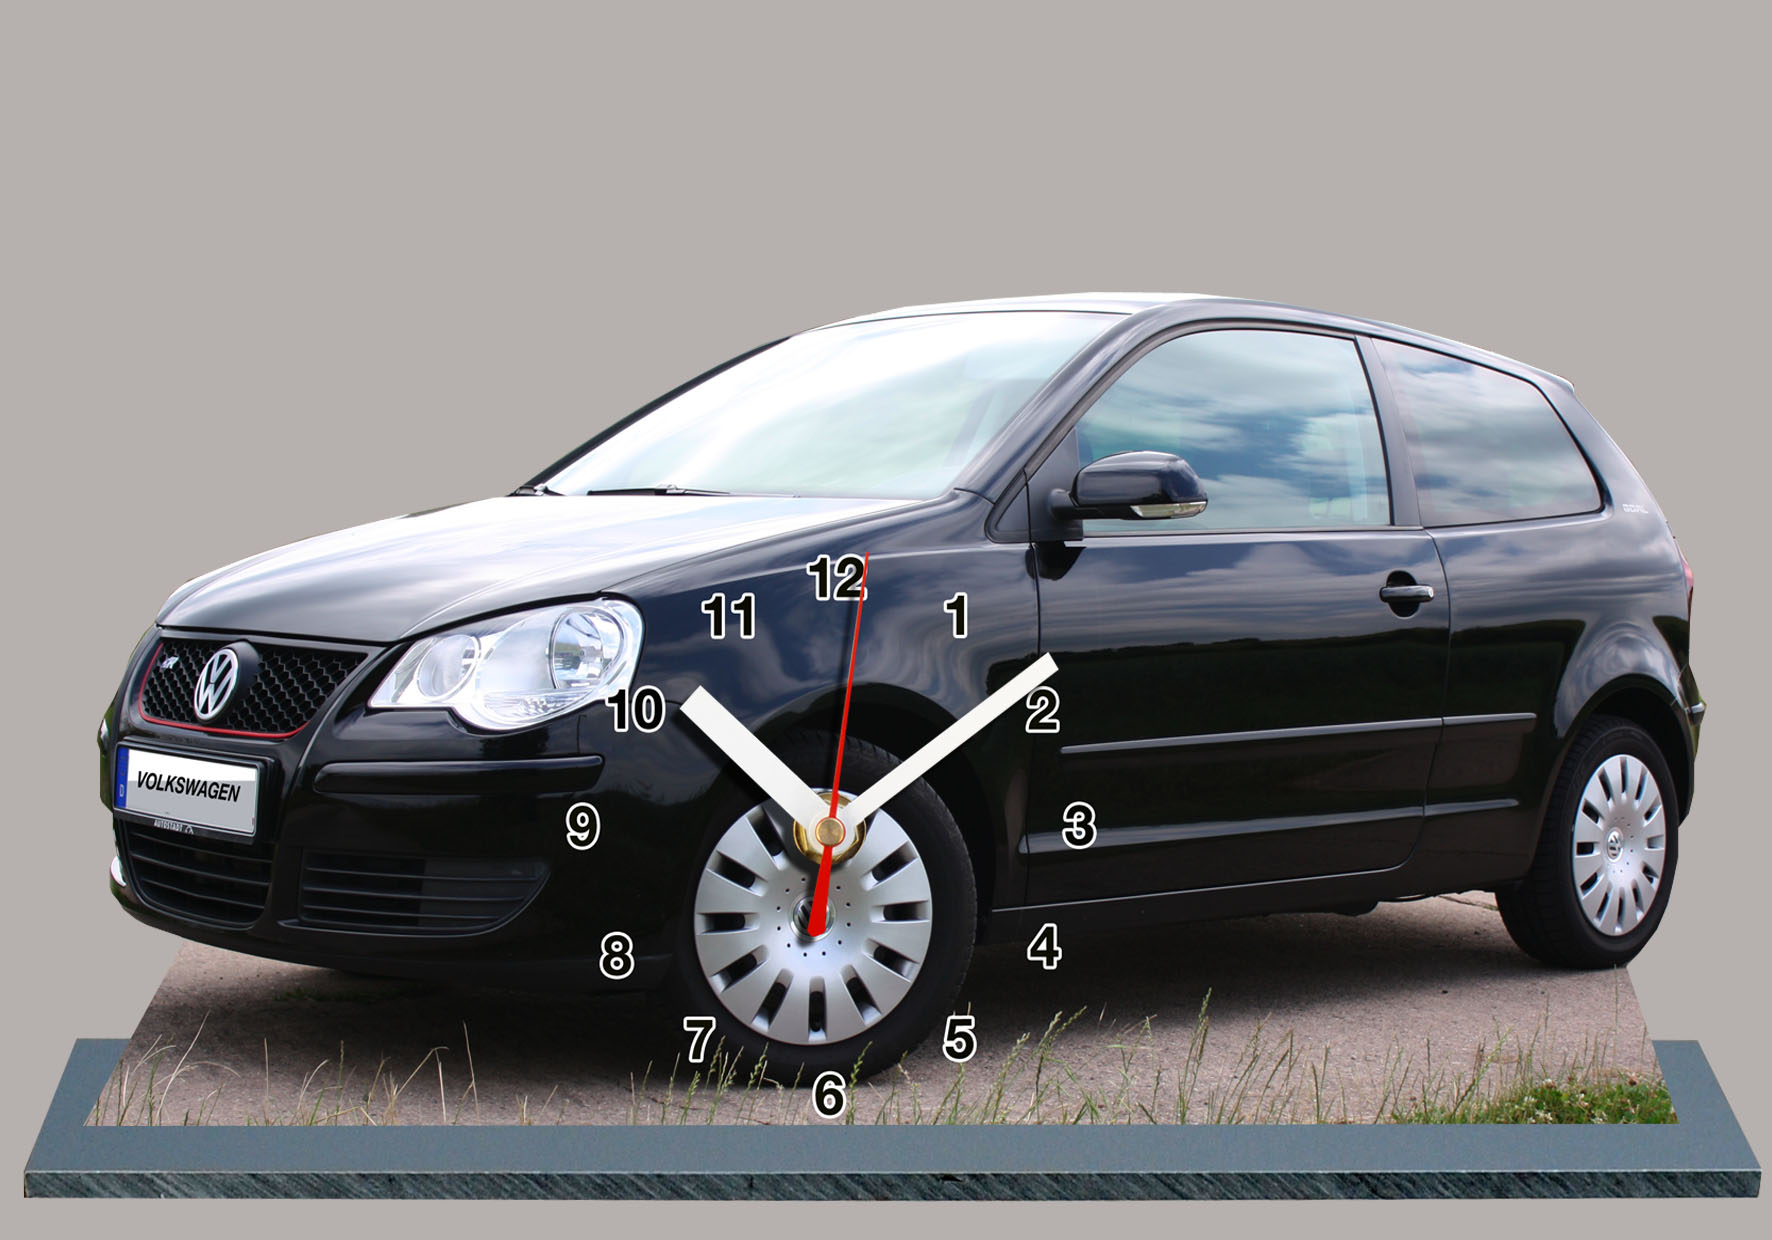 volkswagen polo gti v noir en auto horloge miniature. Black Bedroom Furniture Sets. Home Design Ideas